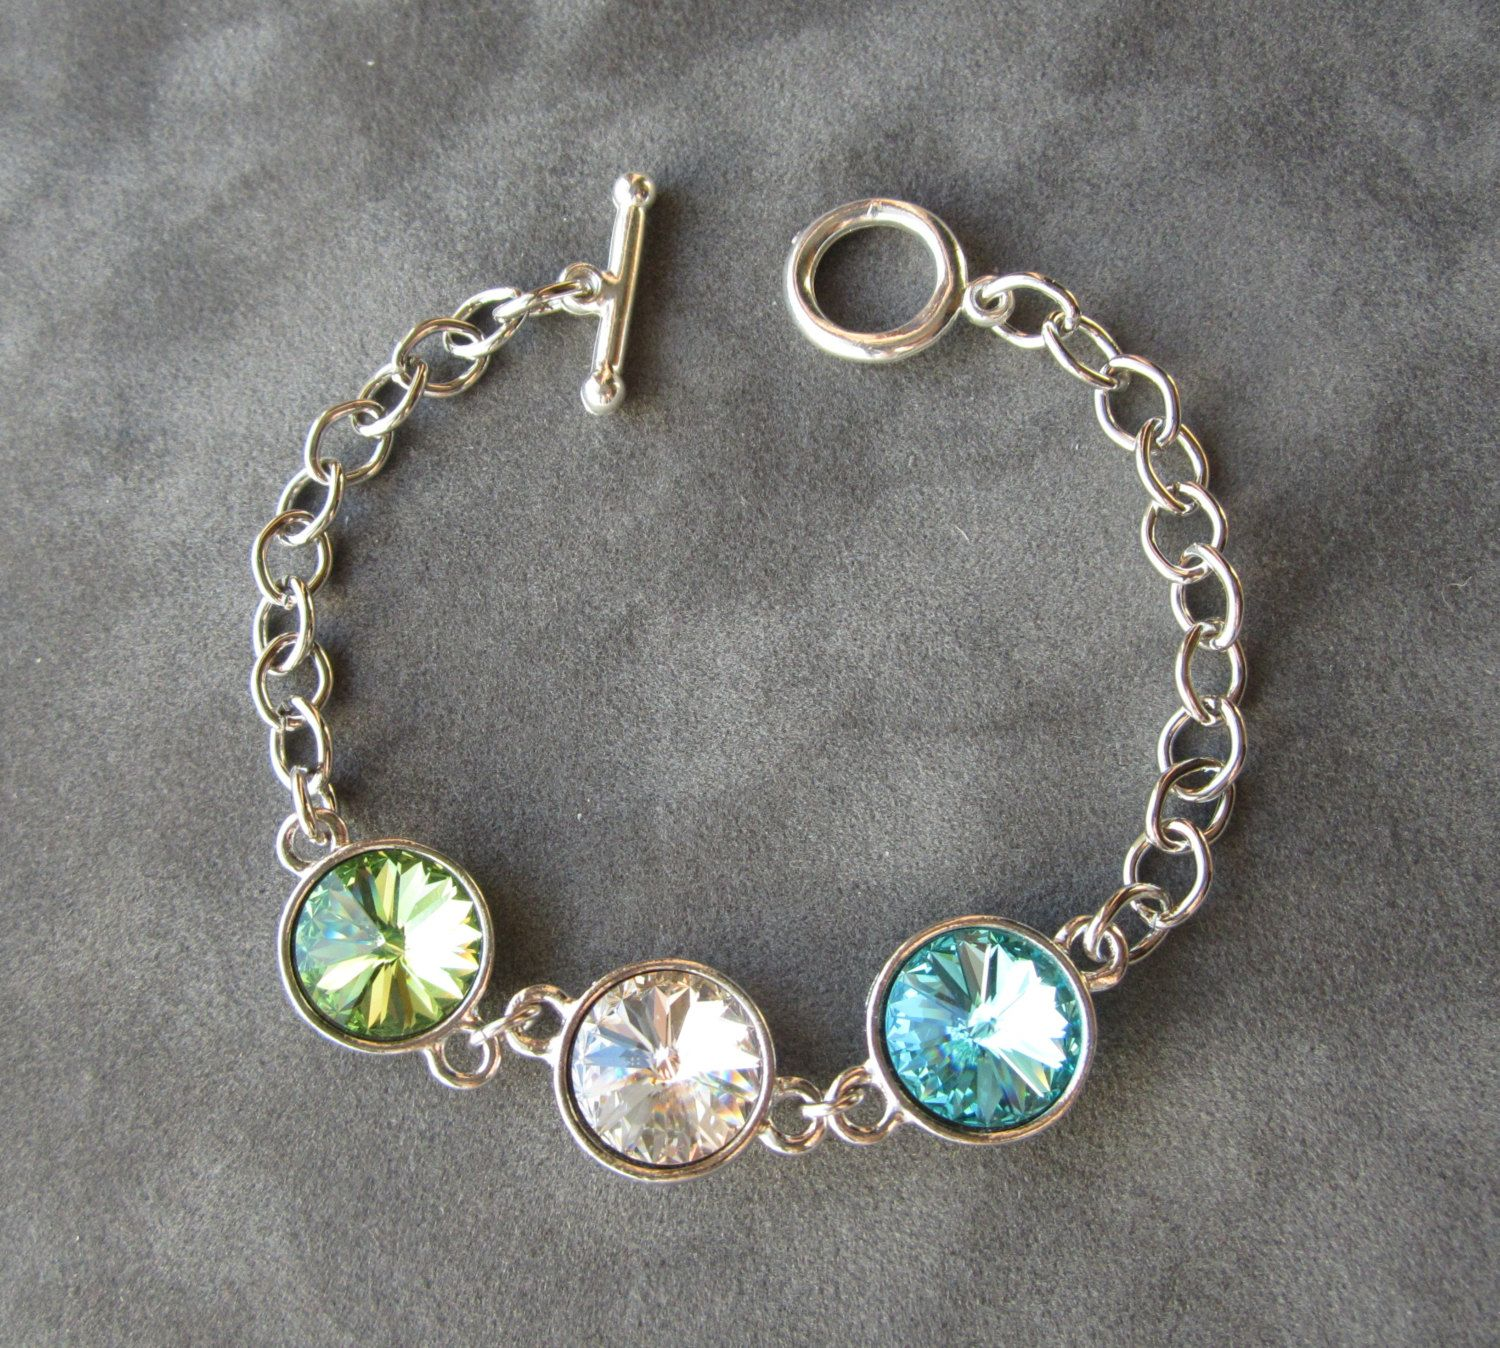 Mothers Birthstone Bracelet Grandmother Gift Mother S Day Grandma Jewelry Personalized For Mom